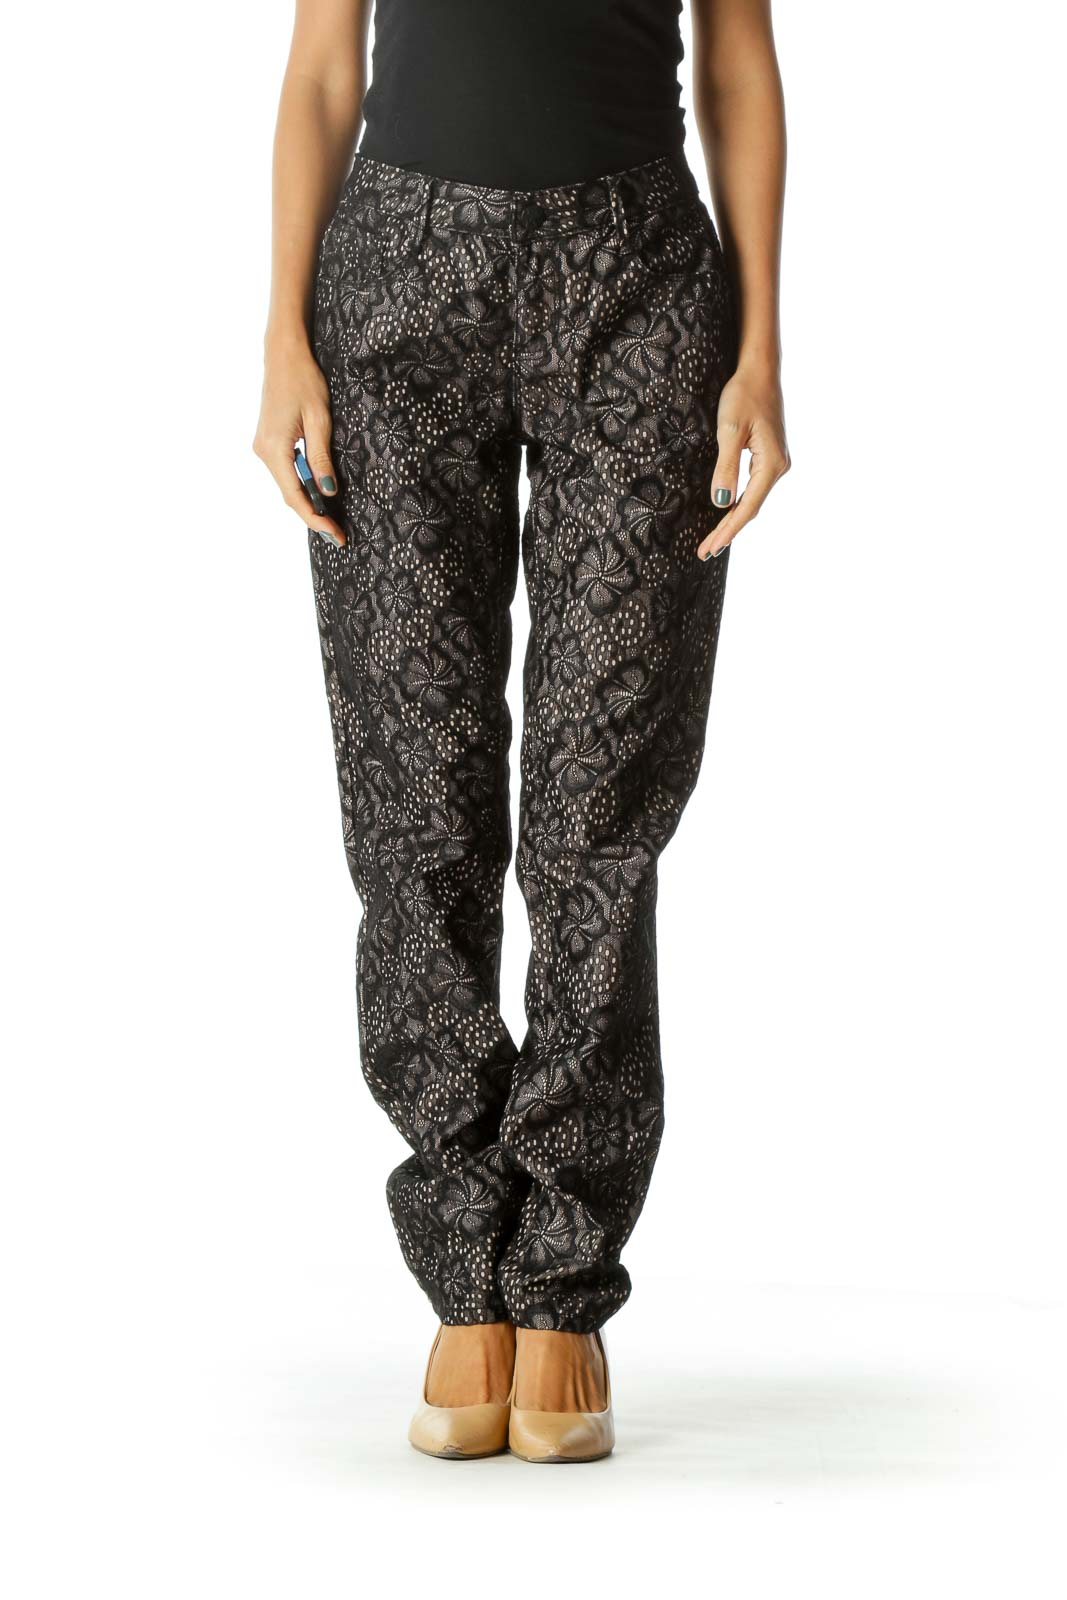 Black Beige Lining Floral Lace Knit Textured Pants